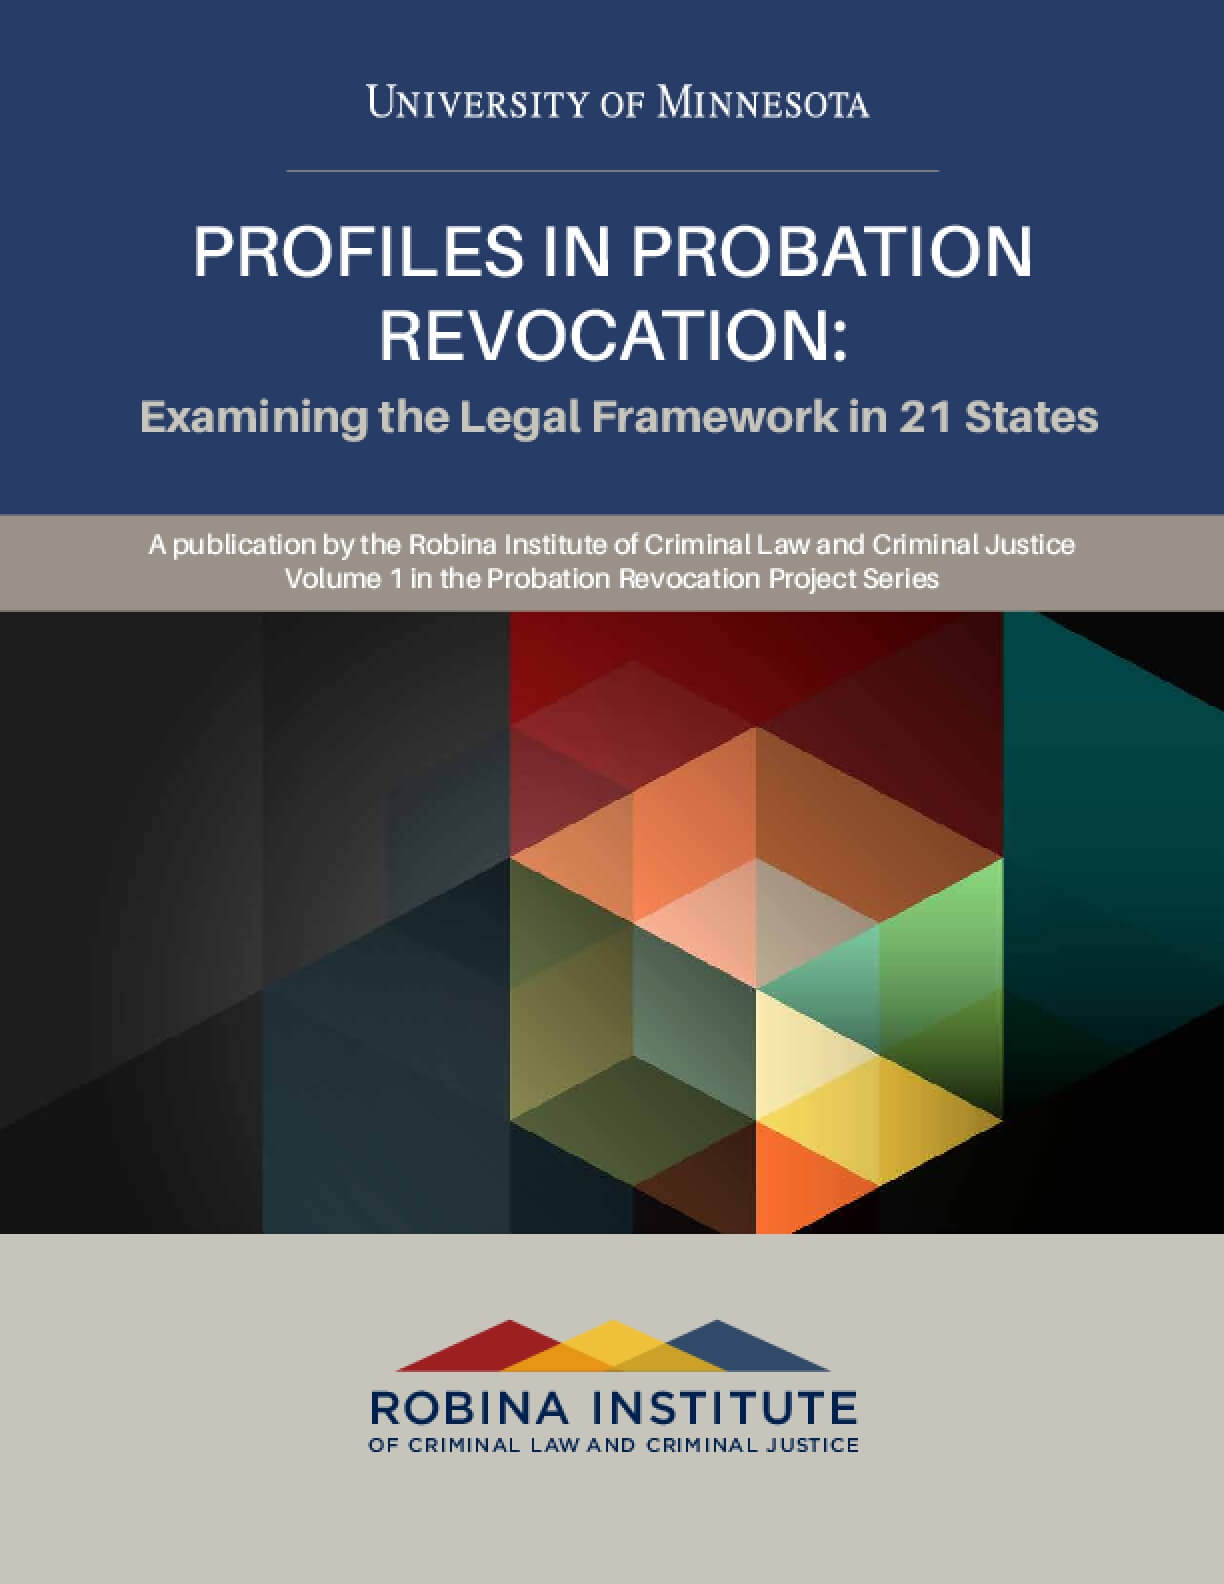 Profiles in Probation Revocation: Examining the Legal Framework in 21 States